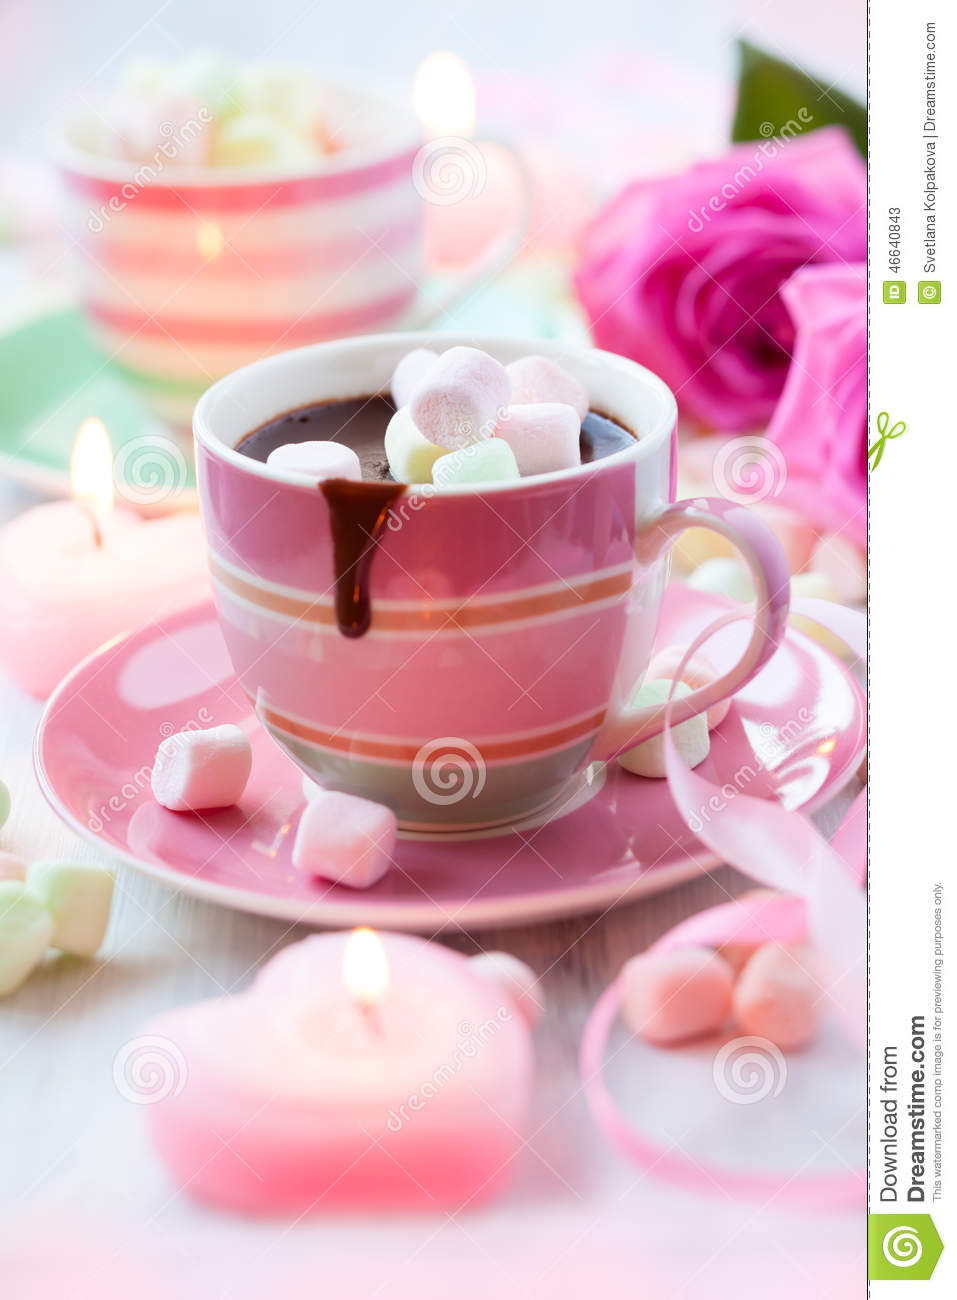 chocolat chaud et guimauve image stock image du assiette 46640843. Black Bedroom Furniture Sets. Home Design Ideas